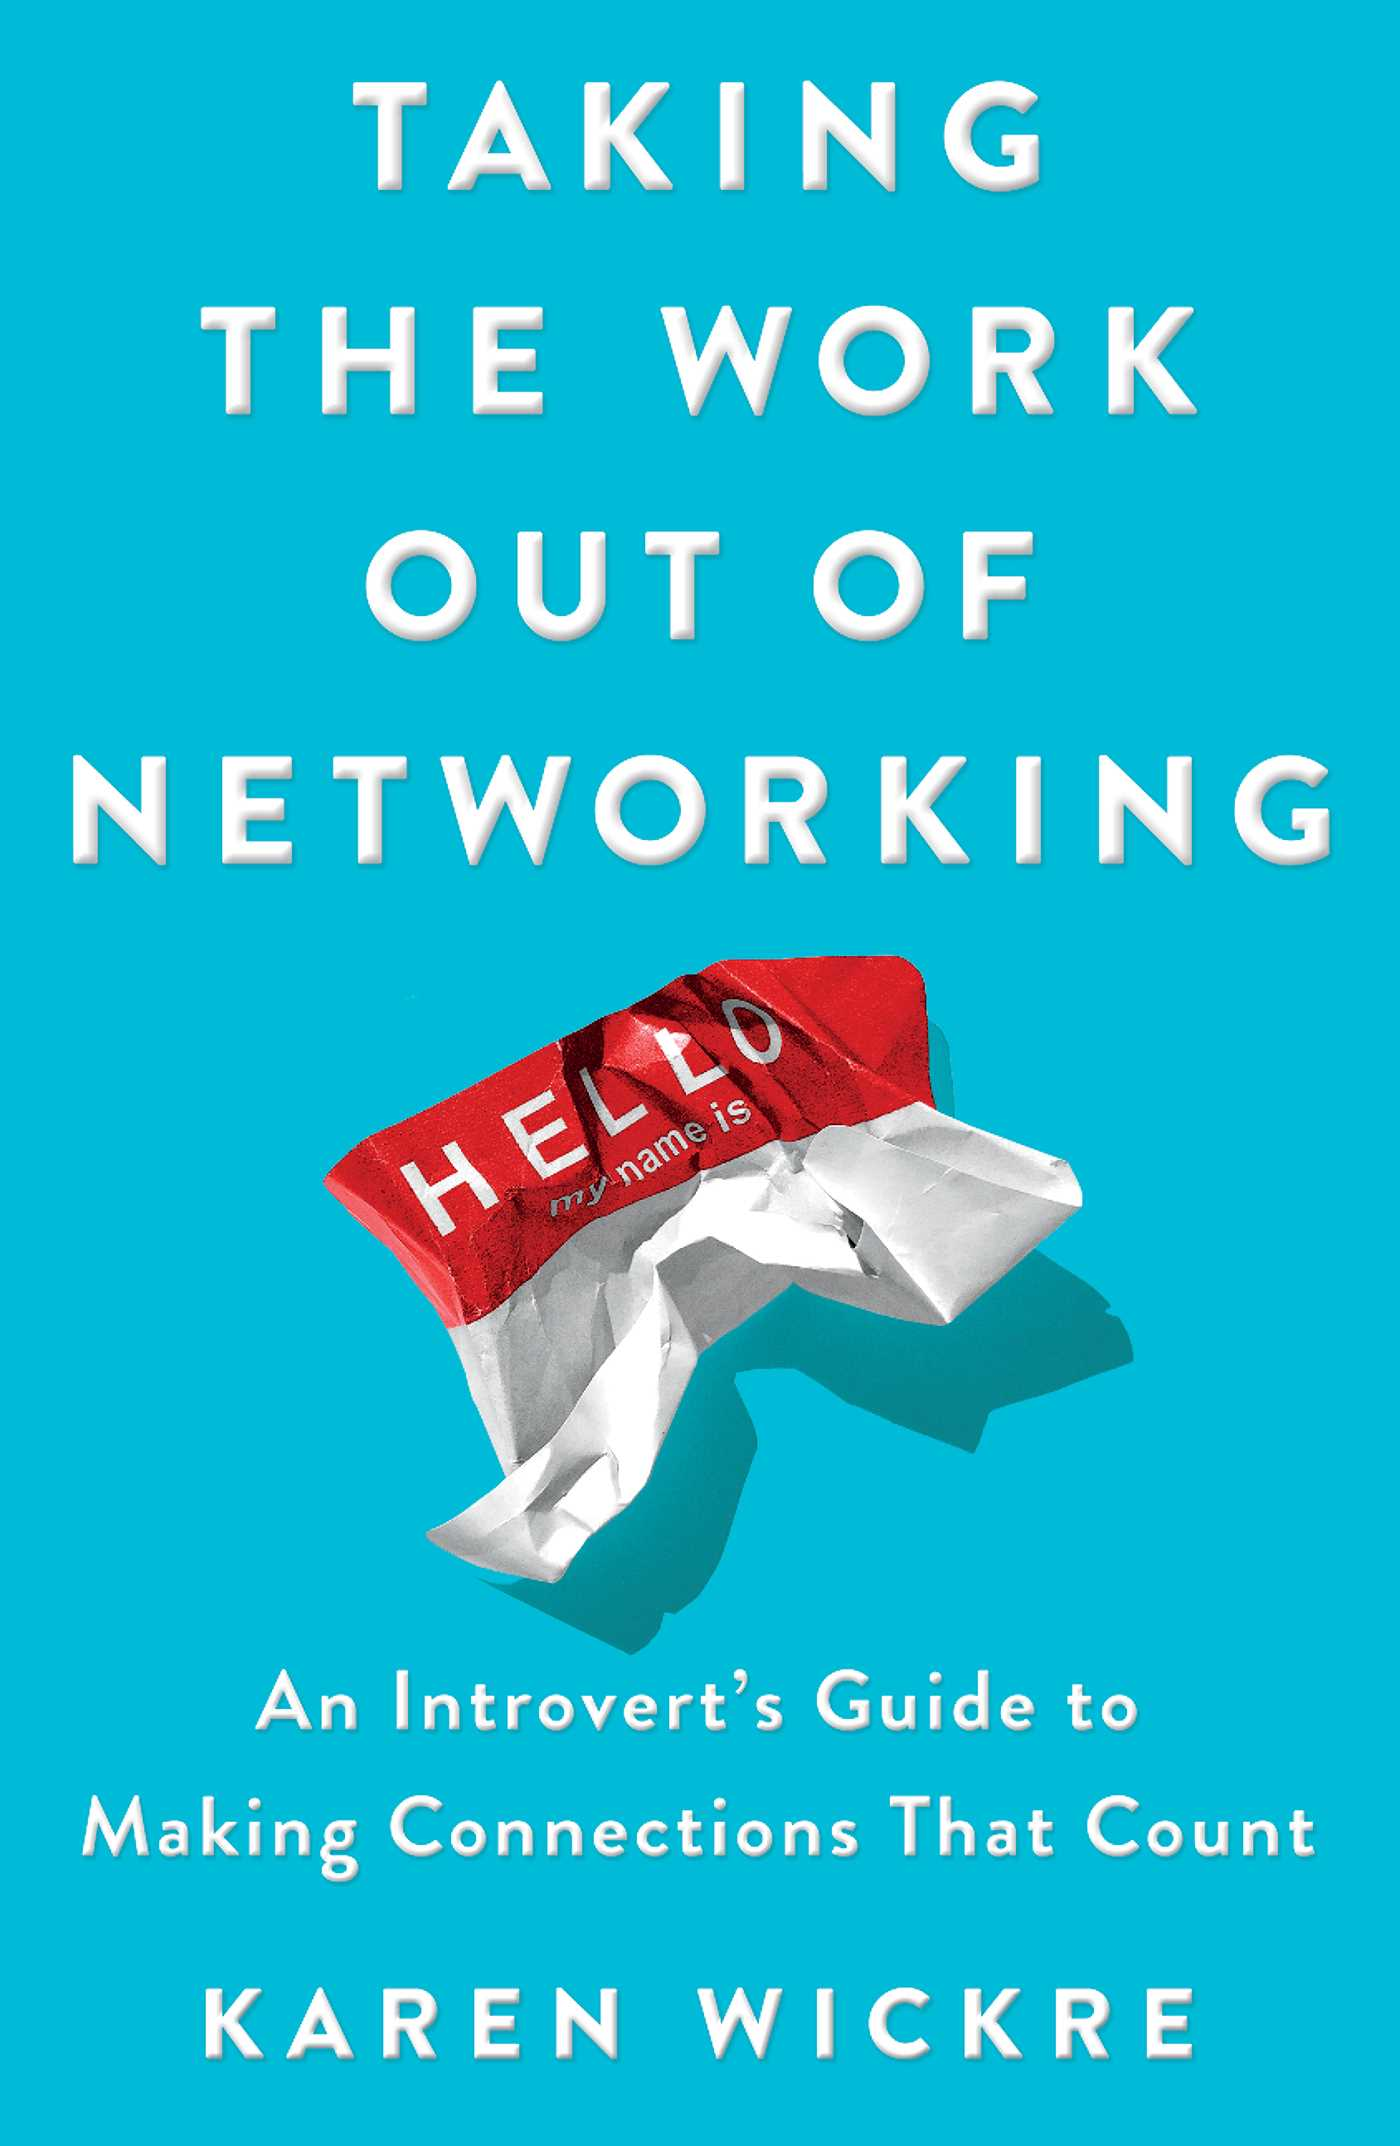 Taking the work out of networking 9781501199271 hr